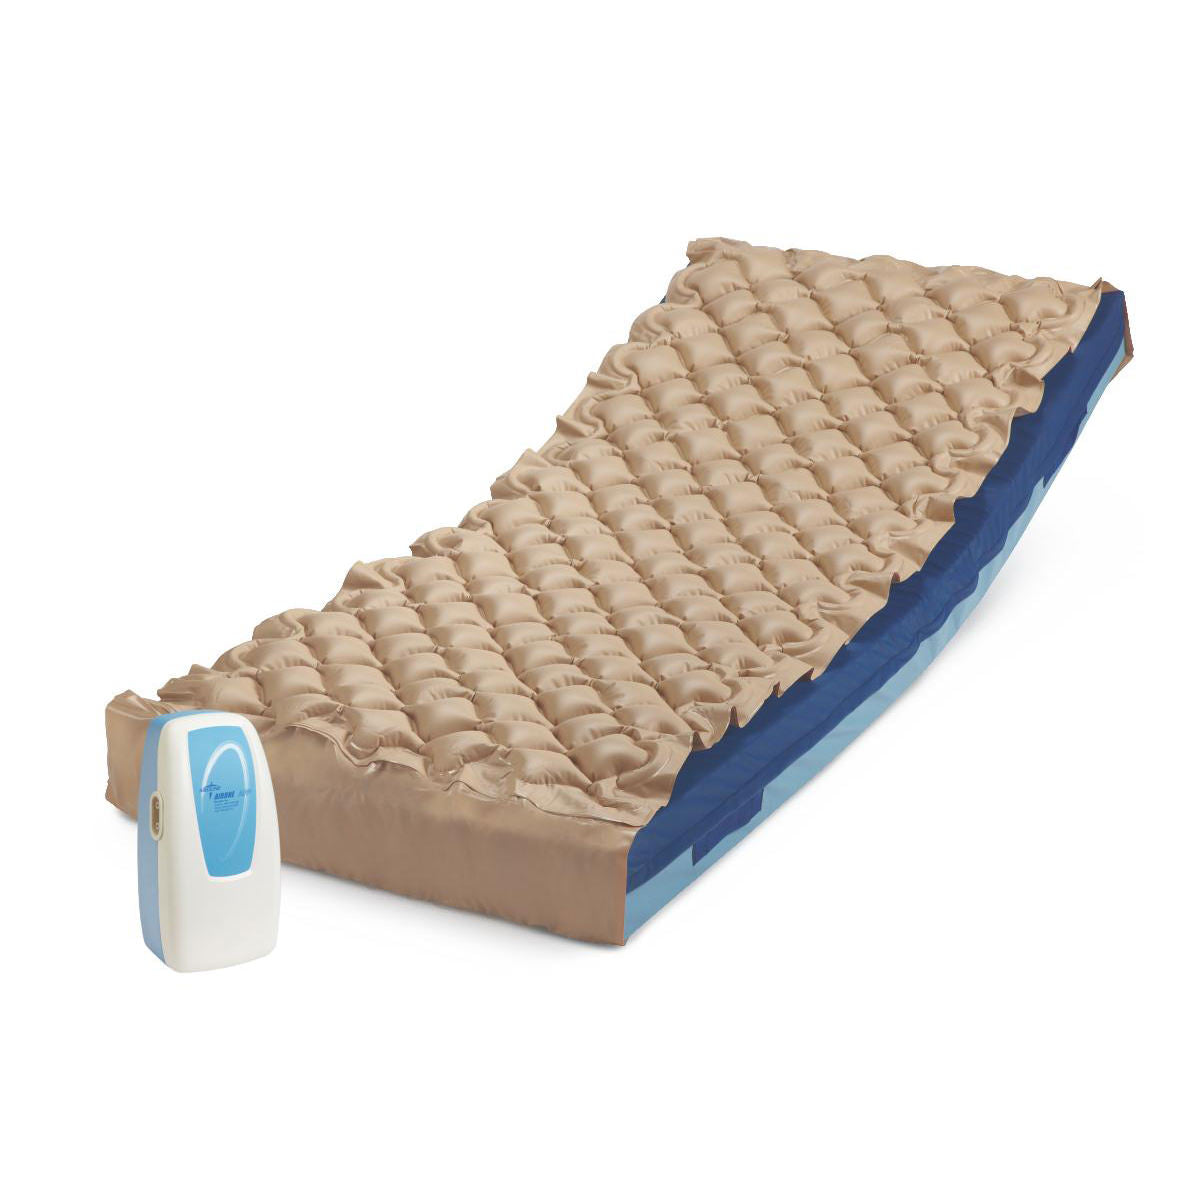 Medline Airone Alternating Pressure Pad with Adjustable Pressure